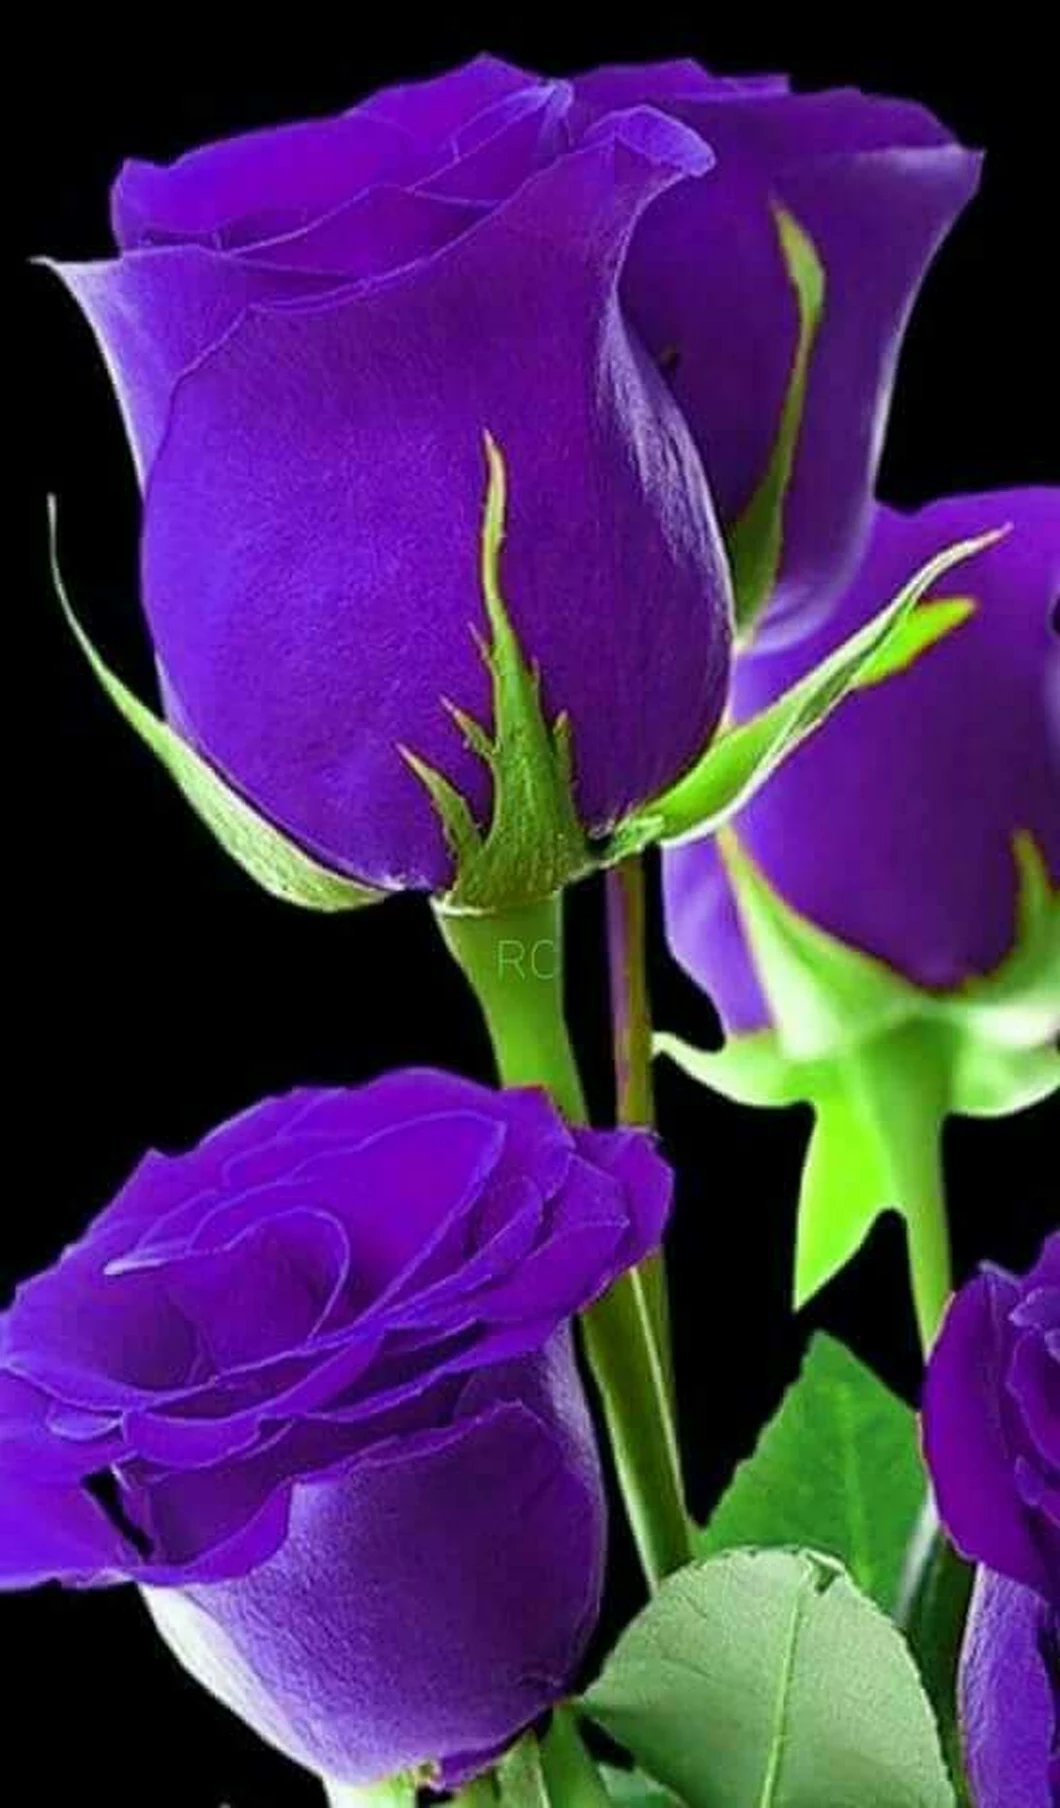 Pin by sawsan chatty on roses pinterest flowers rose beautiful roses pretty flowers beautiful flowers garden rare flowers wonderful flowers exotic flowers roses garden circles colorful roses mightylinksfo Image collections